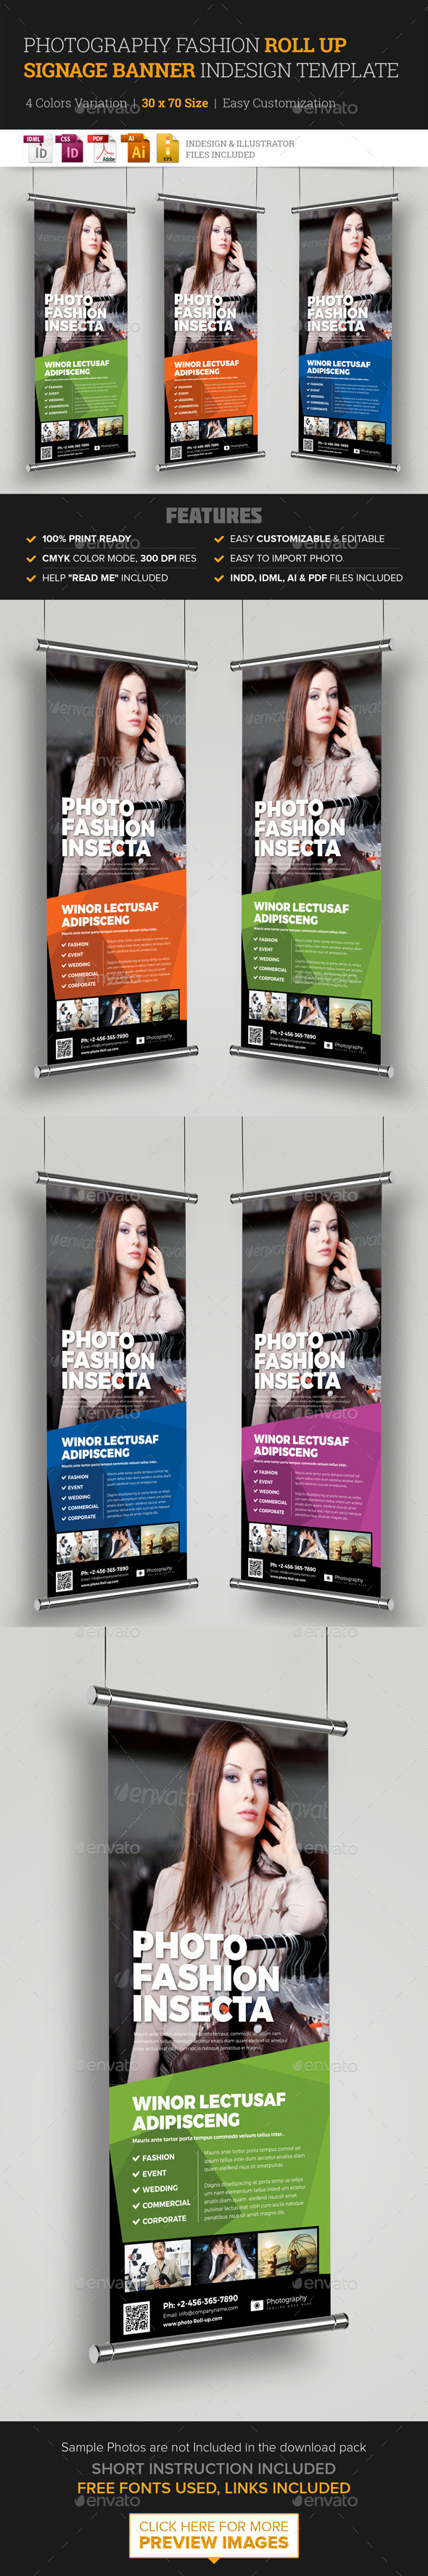 Photography Fashion Roll Up Banner Signage - Signage Print Templates